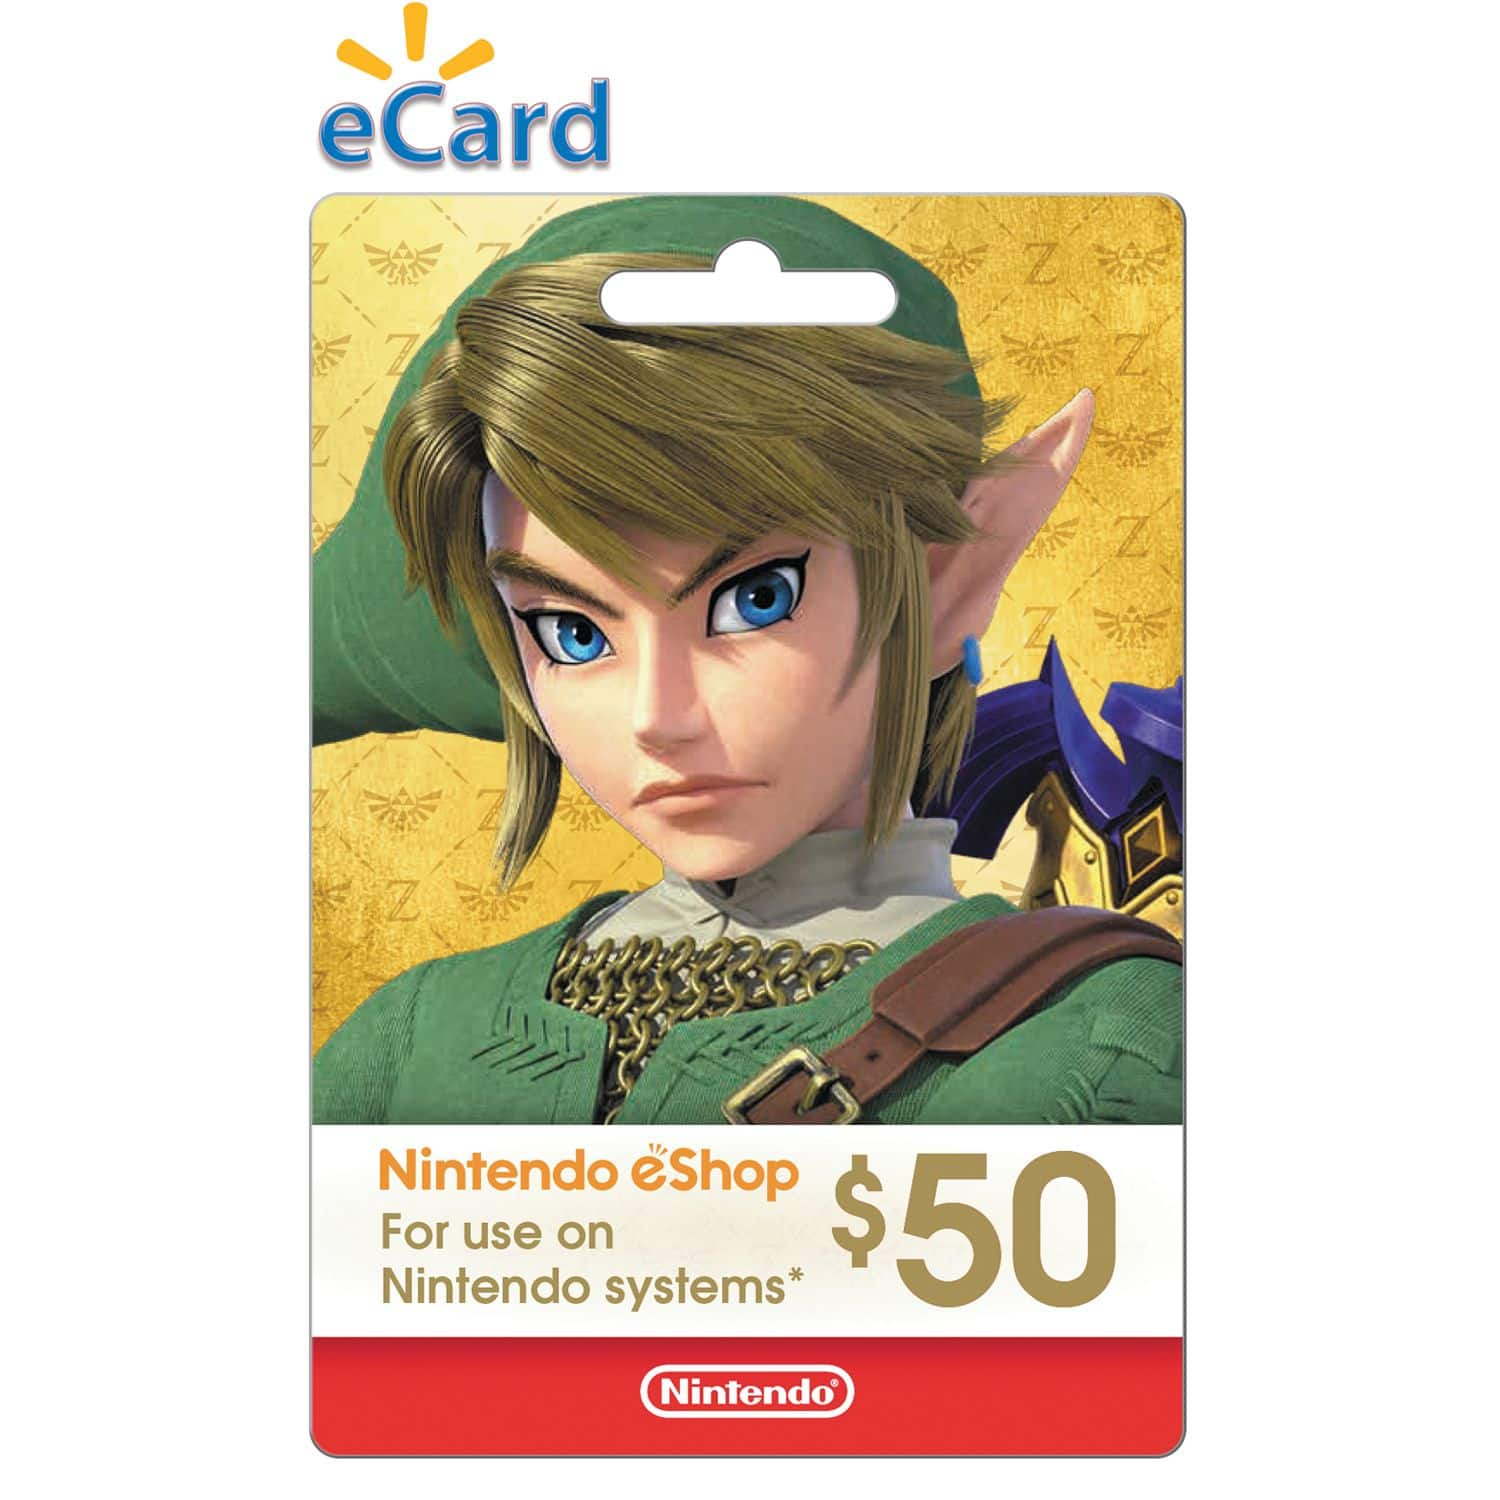 Nintendo eShop Gift Cards (Email Delivery): $35 for $31.50, $50 for